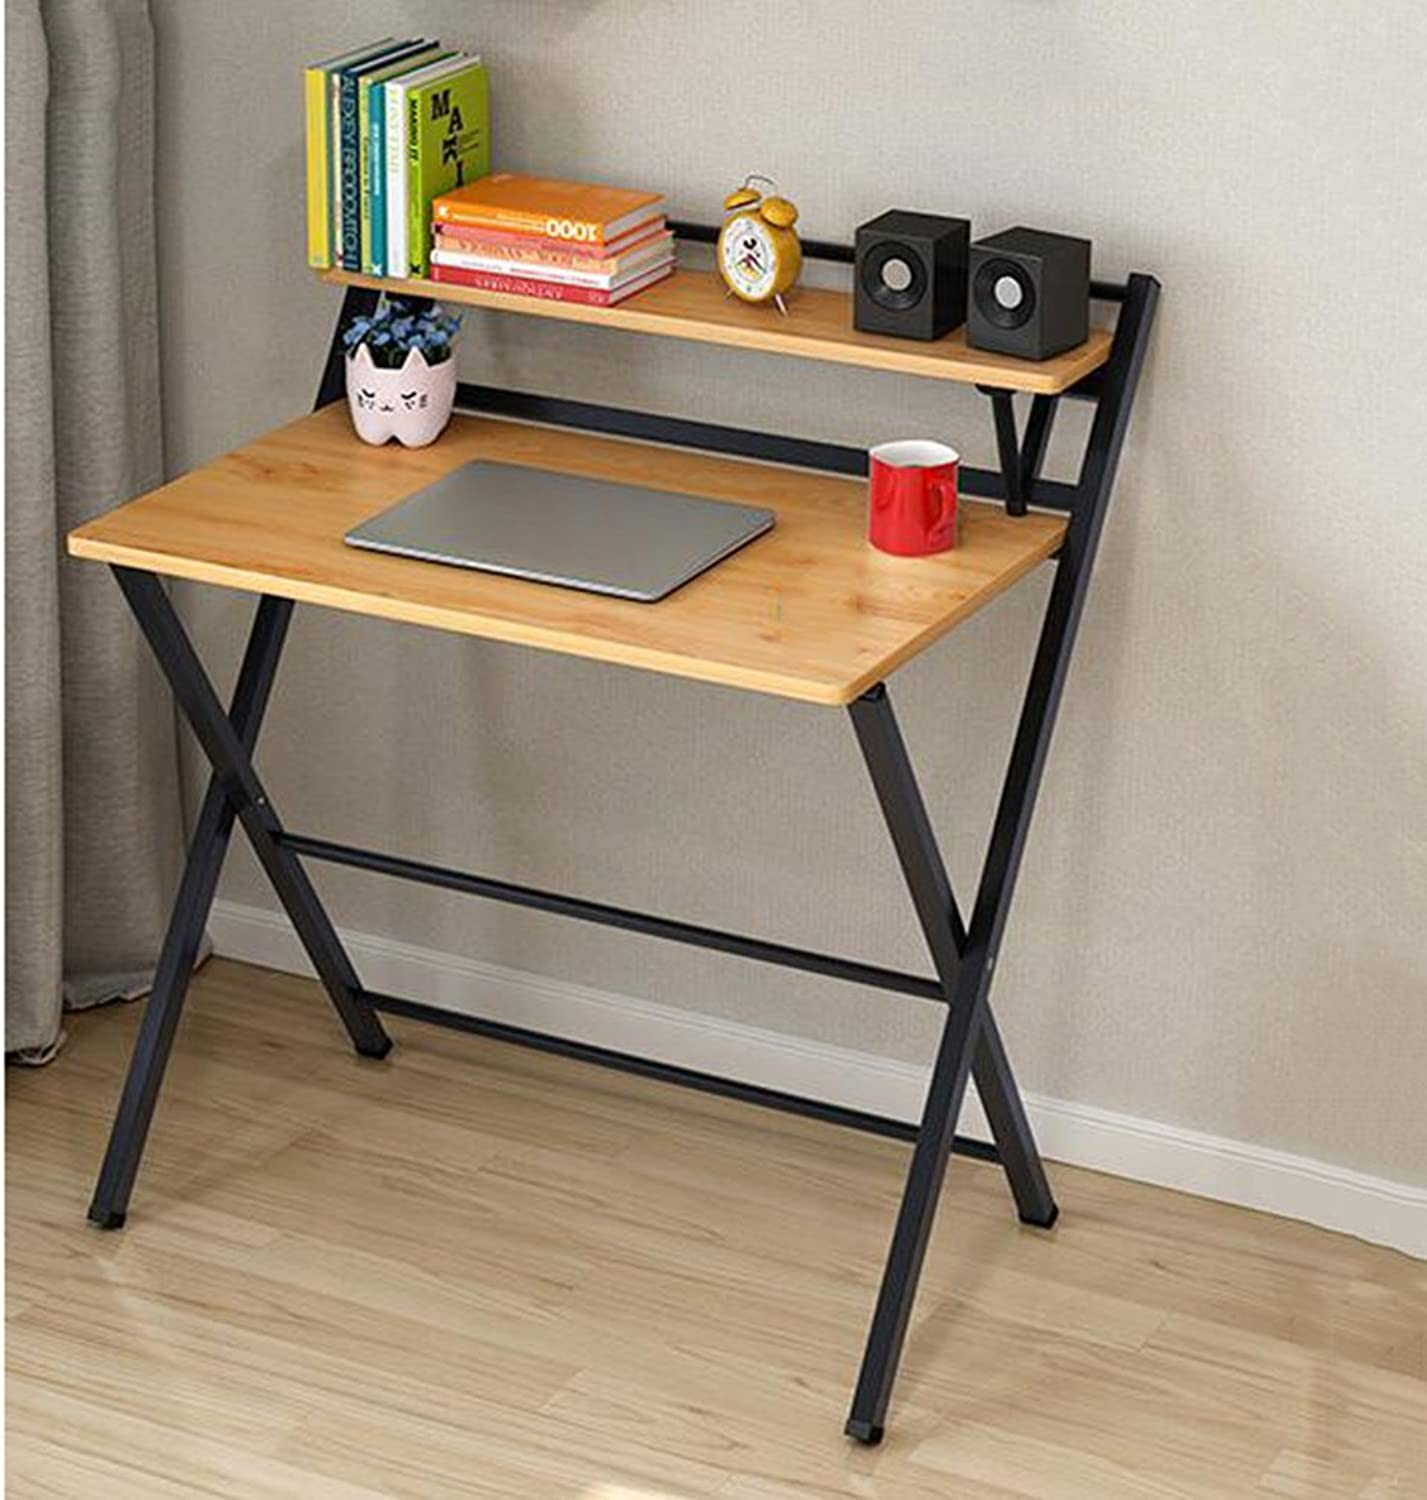 TY BEI Desktop Folding Computer Desk Computer Desk Simple Folding Table Study Table Book Table Simple Home Desktop Computer Desk Small Table Solid Wood Tables Optional color   (color   White)